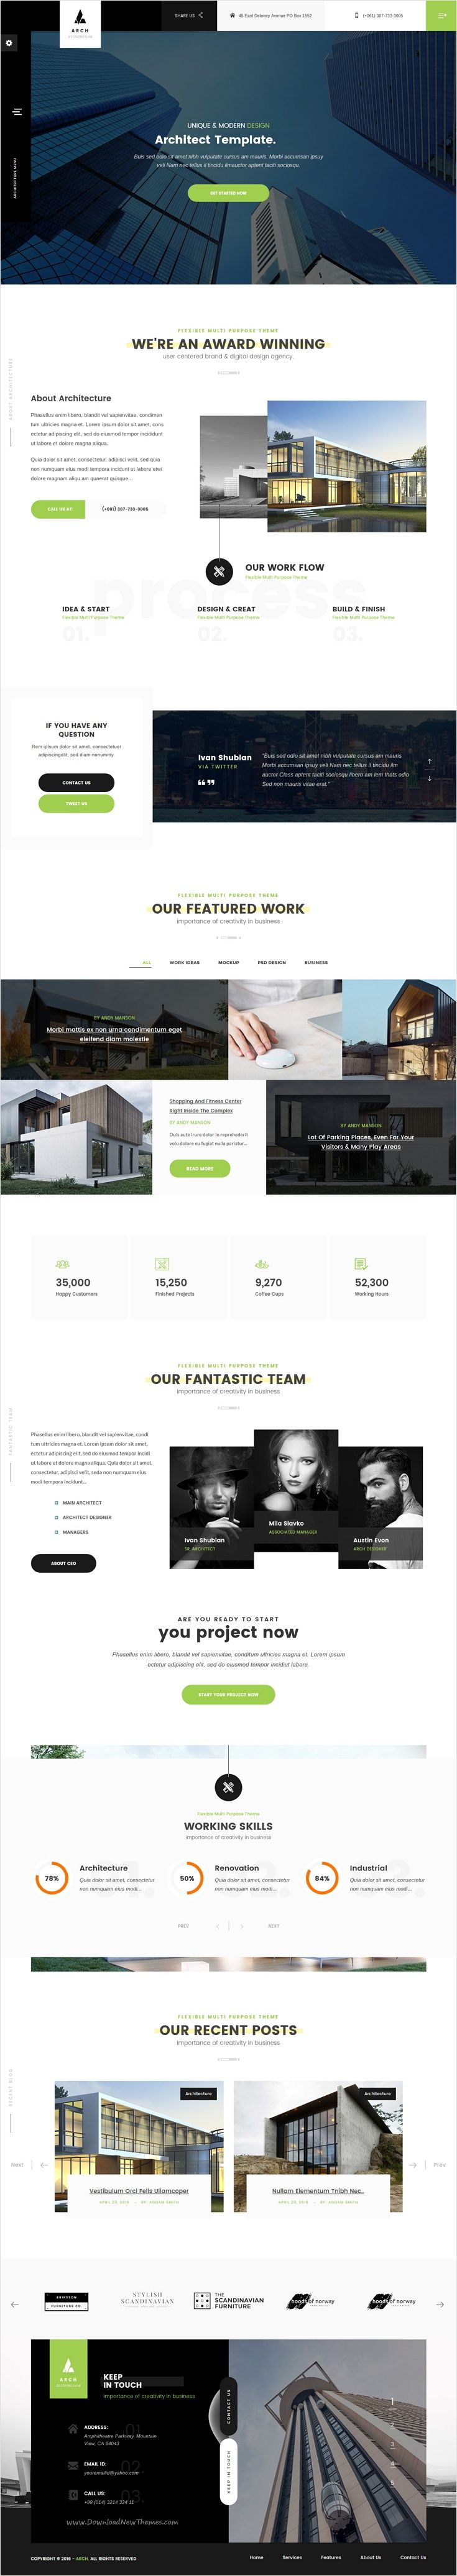 Arch is a Premium One page & Multi-page #bootstrap #template best suitable for #webdev Design #Architecture, Engineering agencies, photographers and personal portfolios related services website download now➩ https://themeforest.net/item/arch-multipurpose-onepage-multipage-html-template/18567948?ref=Datasata